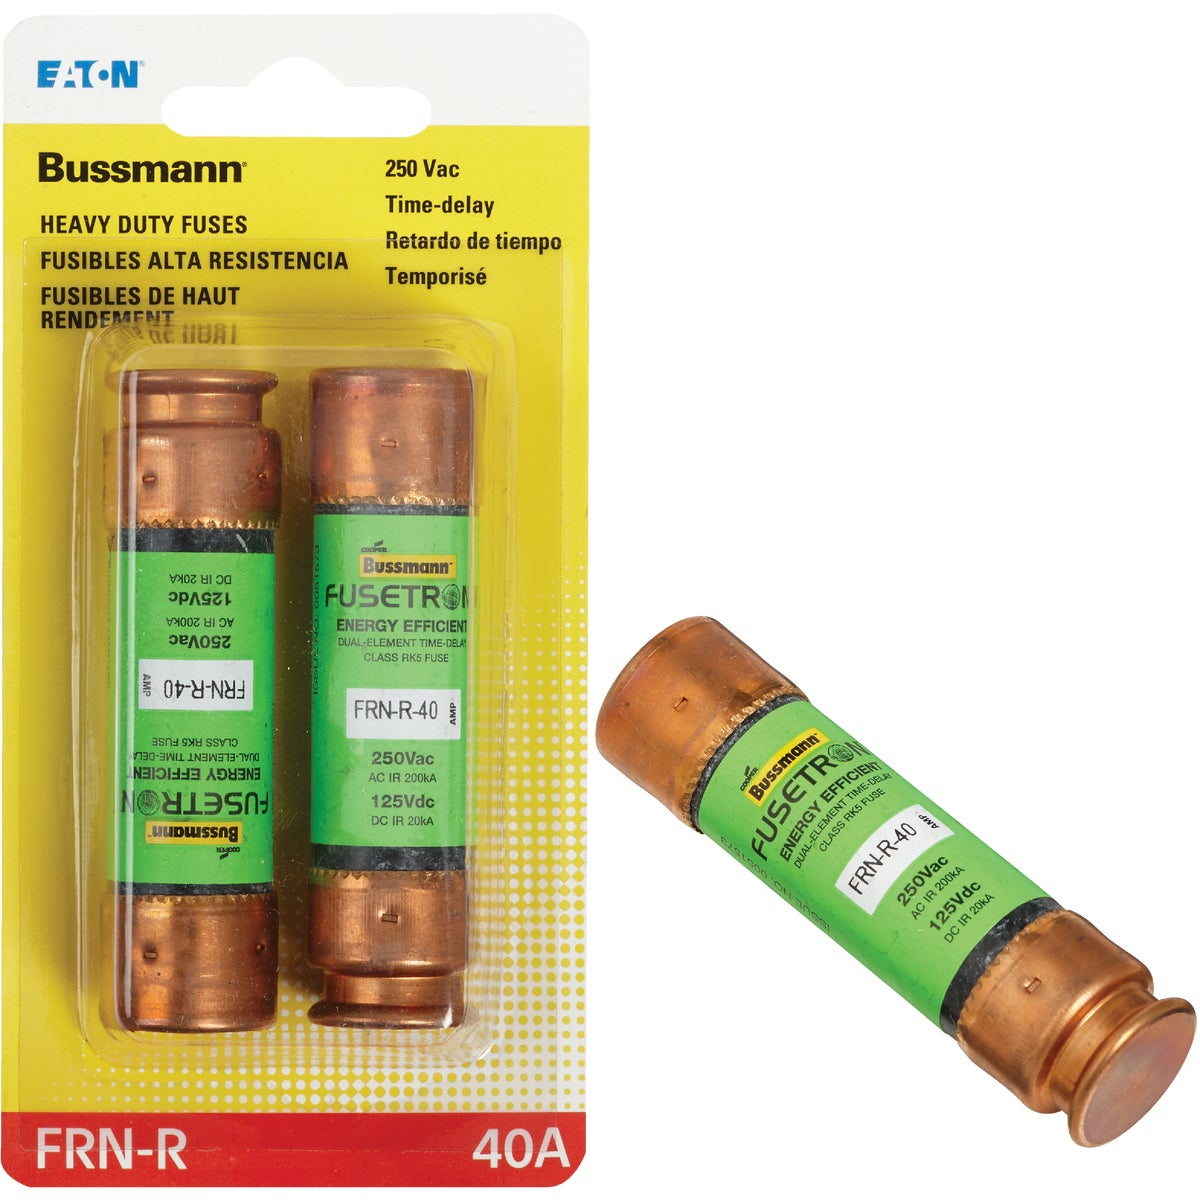 40A CARTRIDGE FUSE